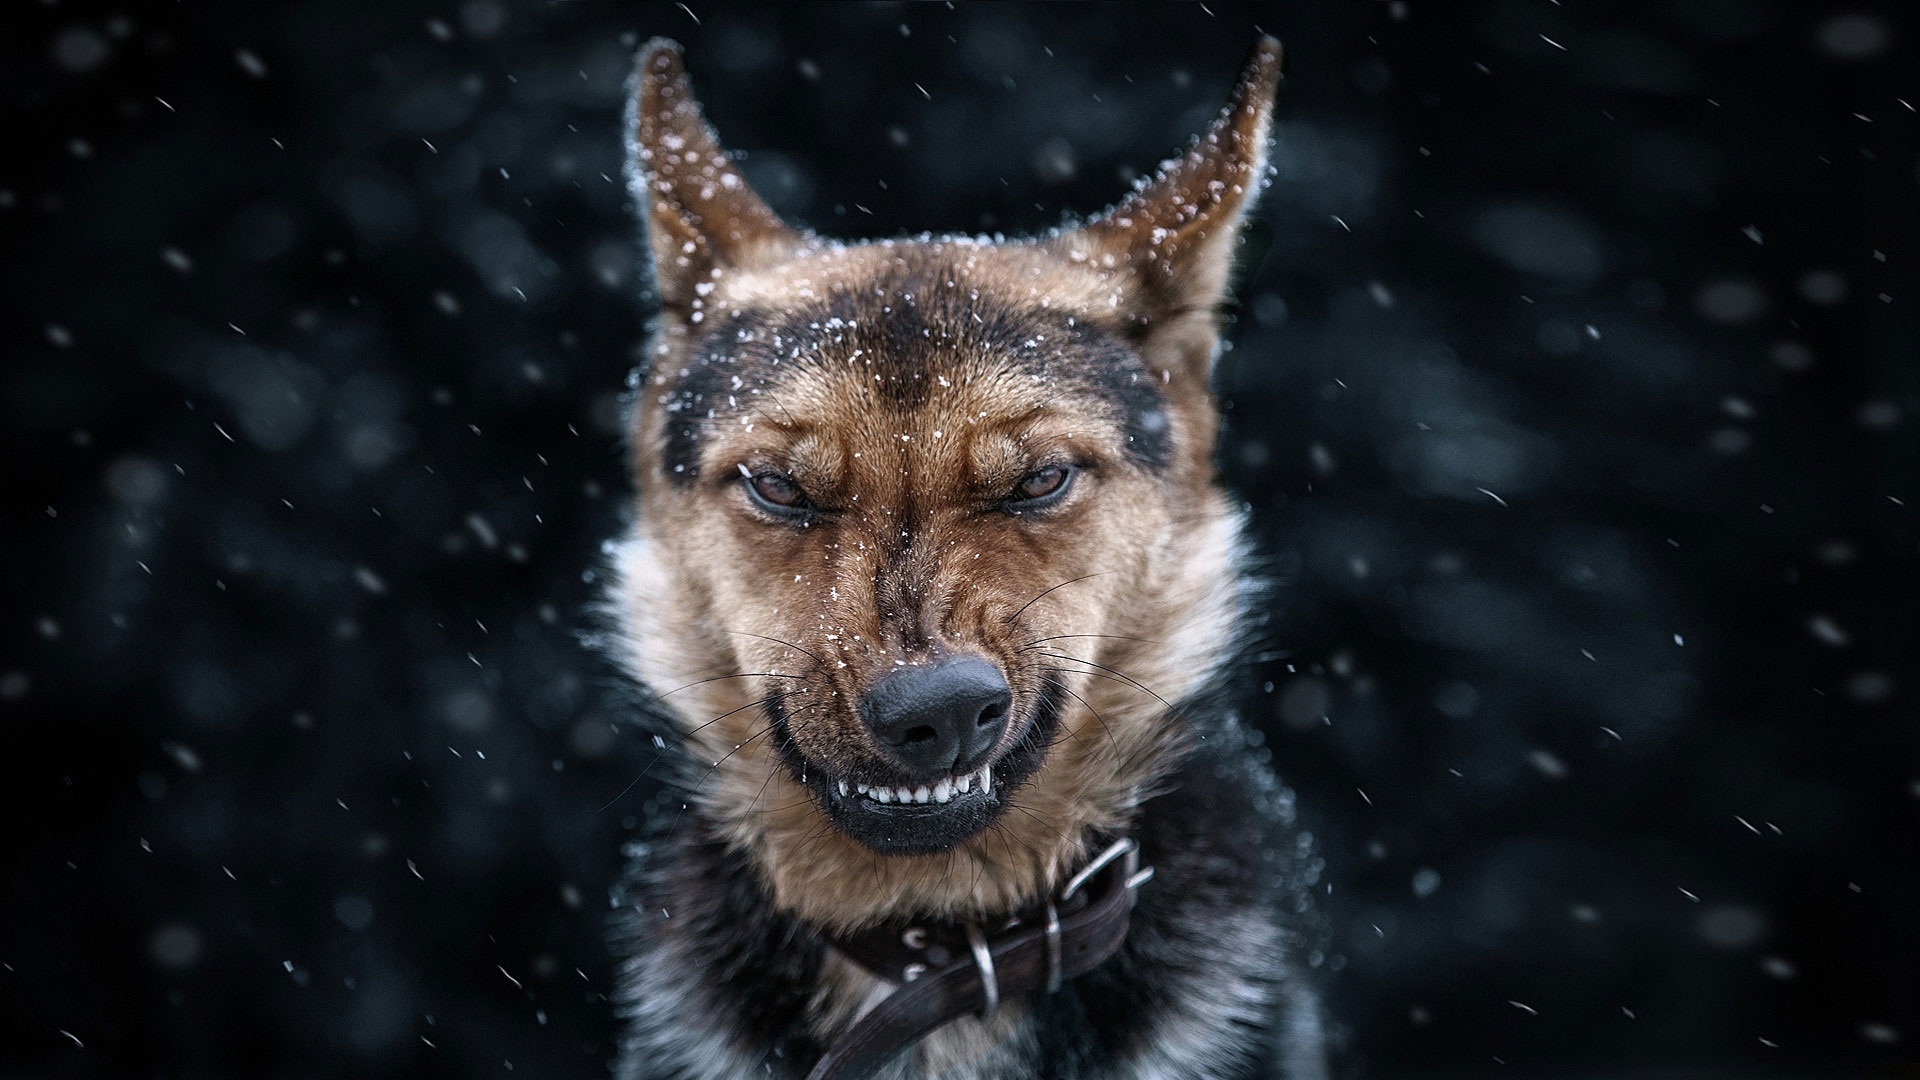 Angry Dog Wallpaper